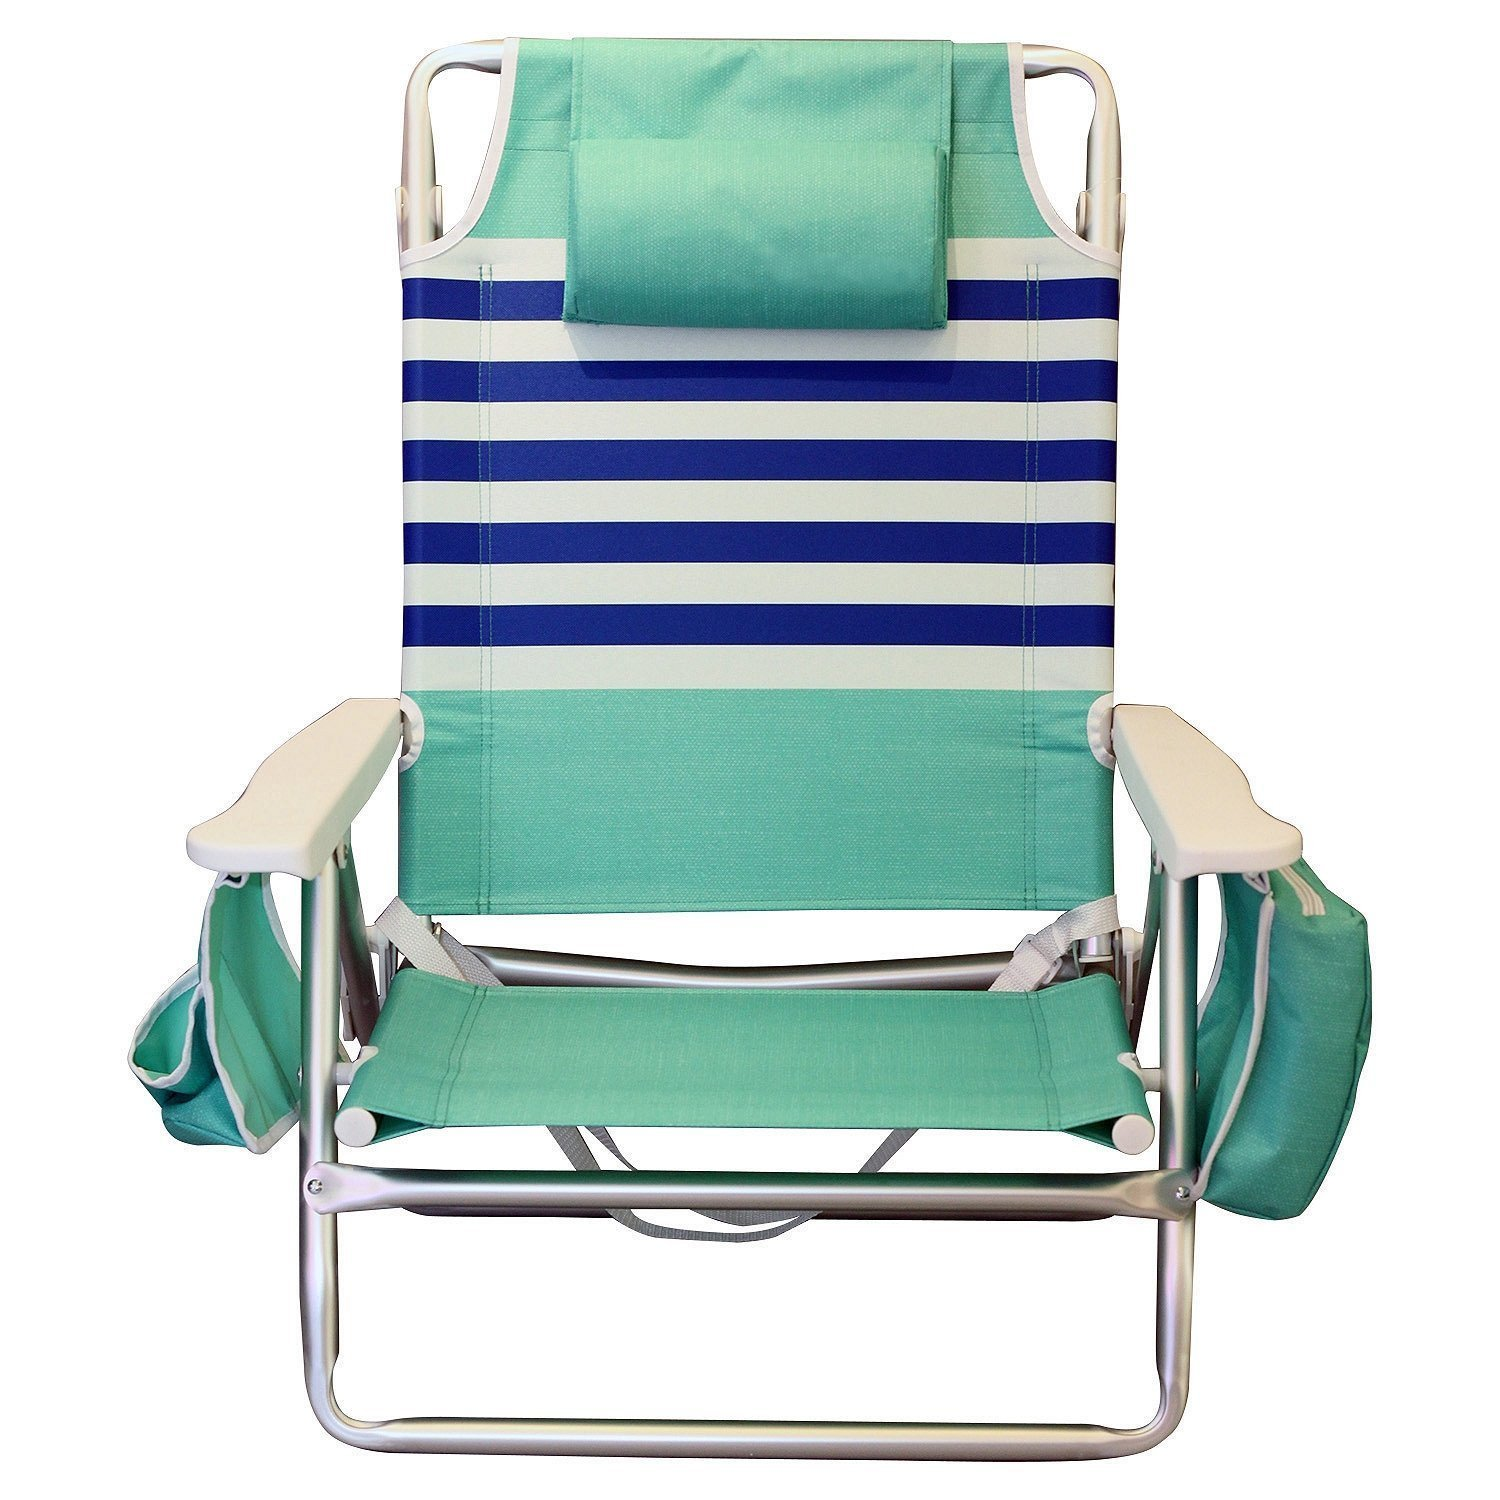 Nautica Reclining Portable Beach Chair with Insulated Cooler